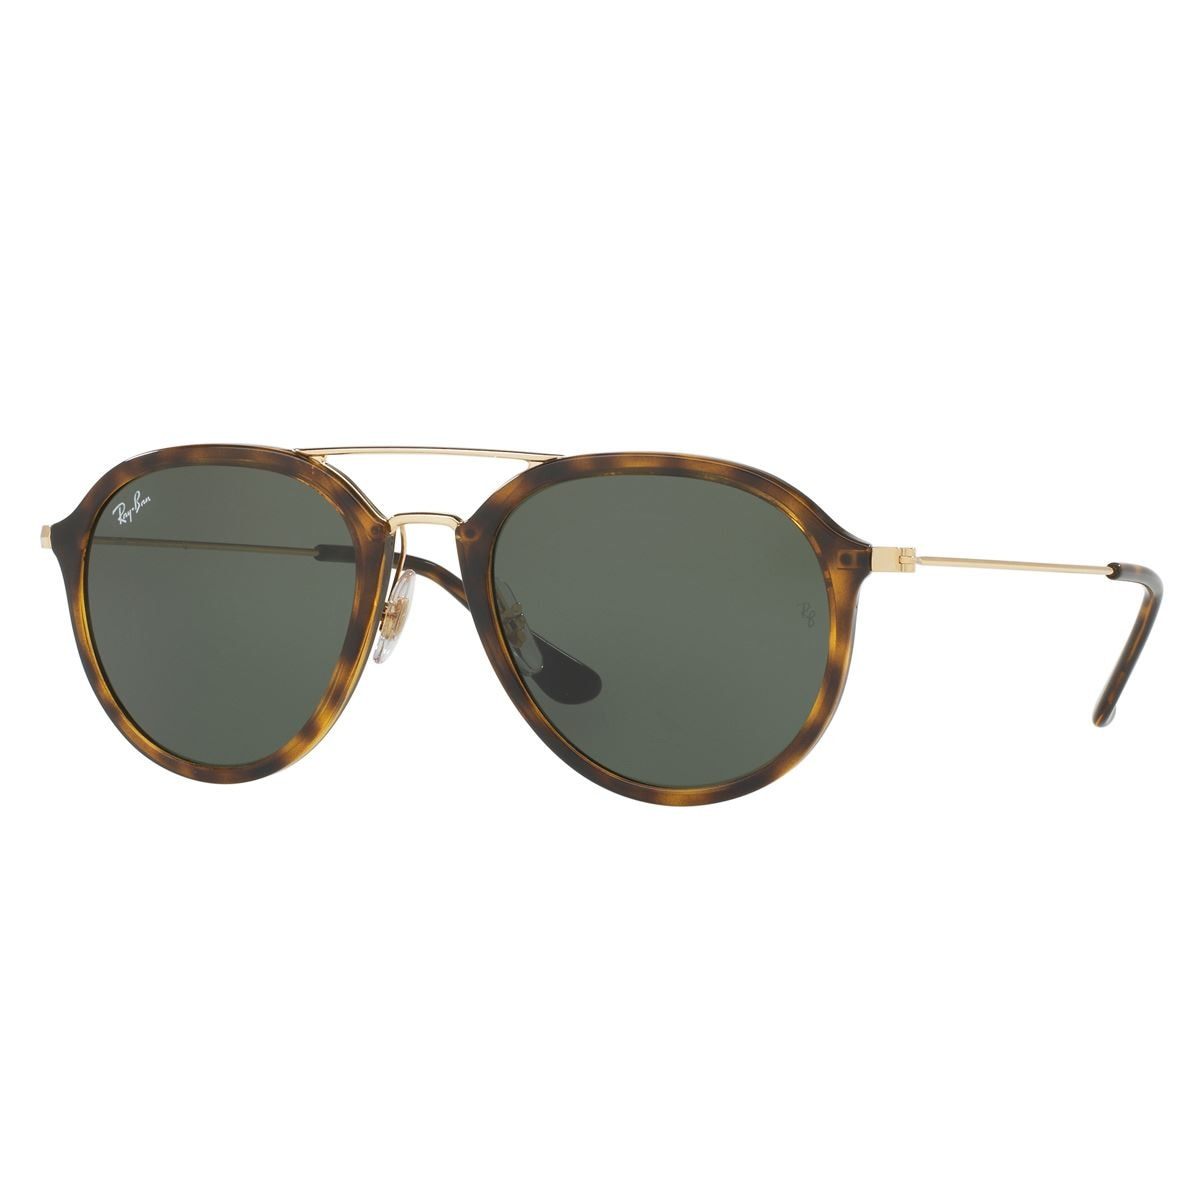 Solar ray ban 0rb4253 710 53 u  - Sanborns